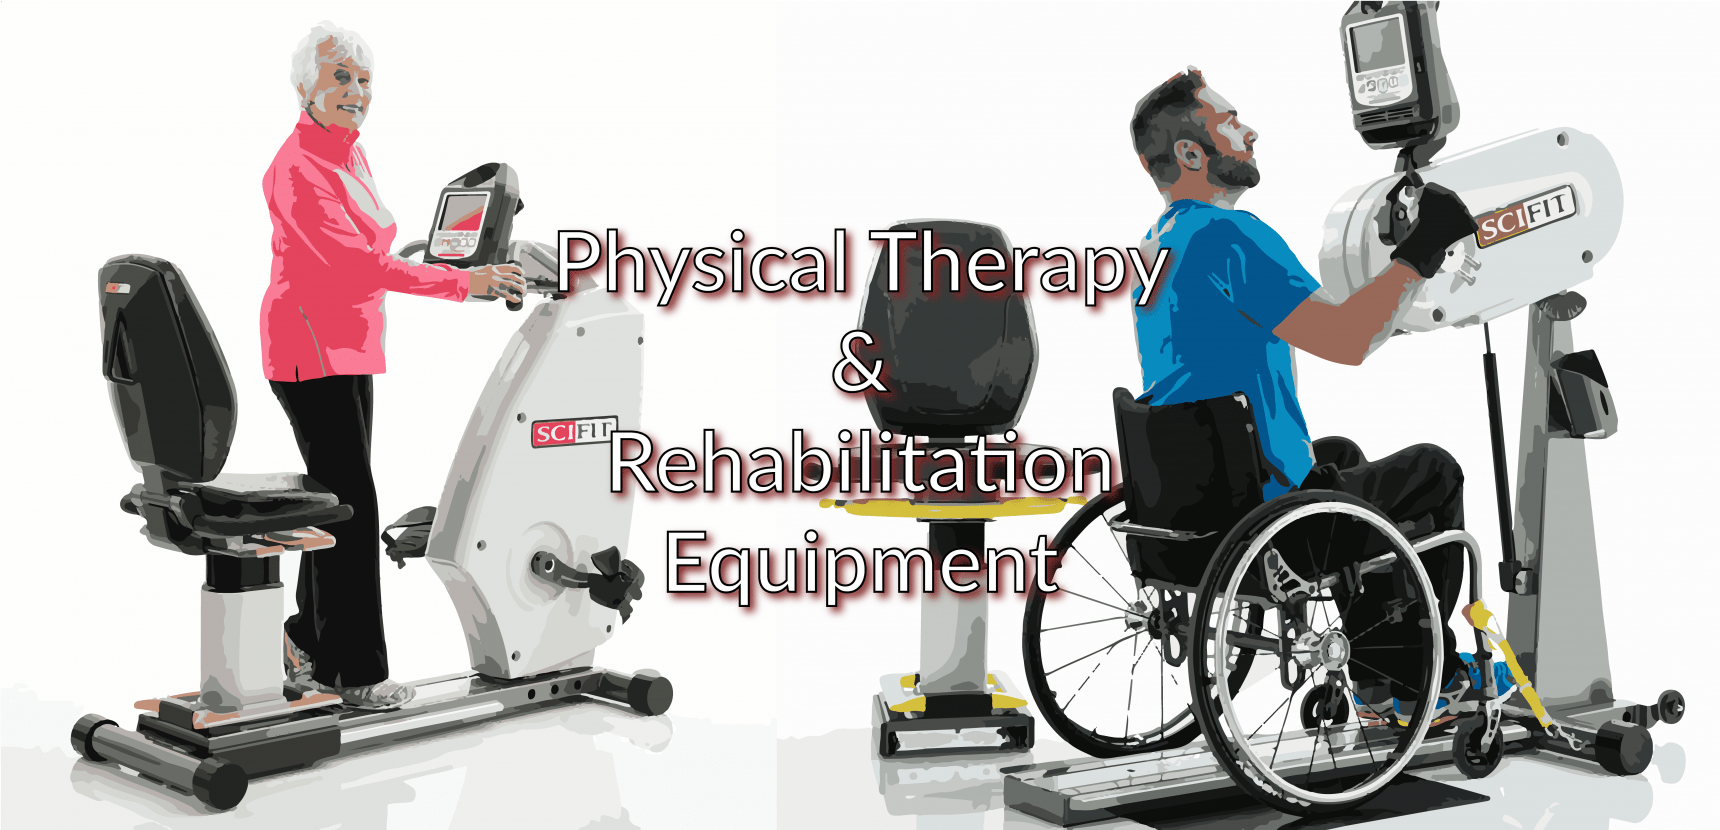 Physical Therapy and Rehabilitation Equipment Image